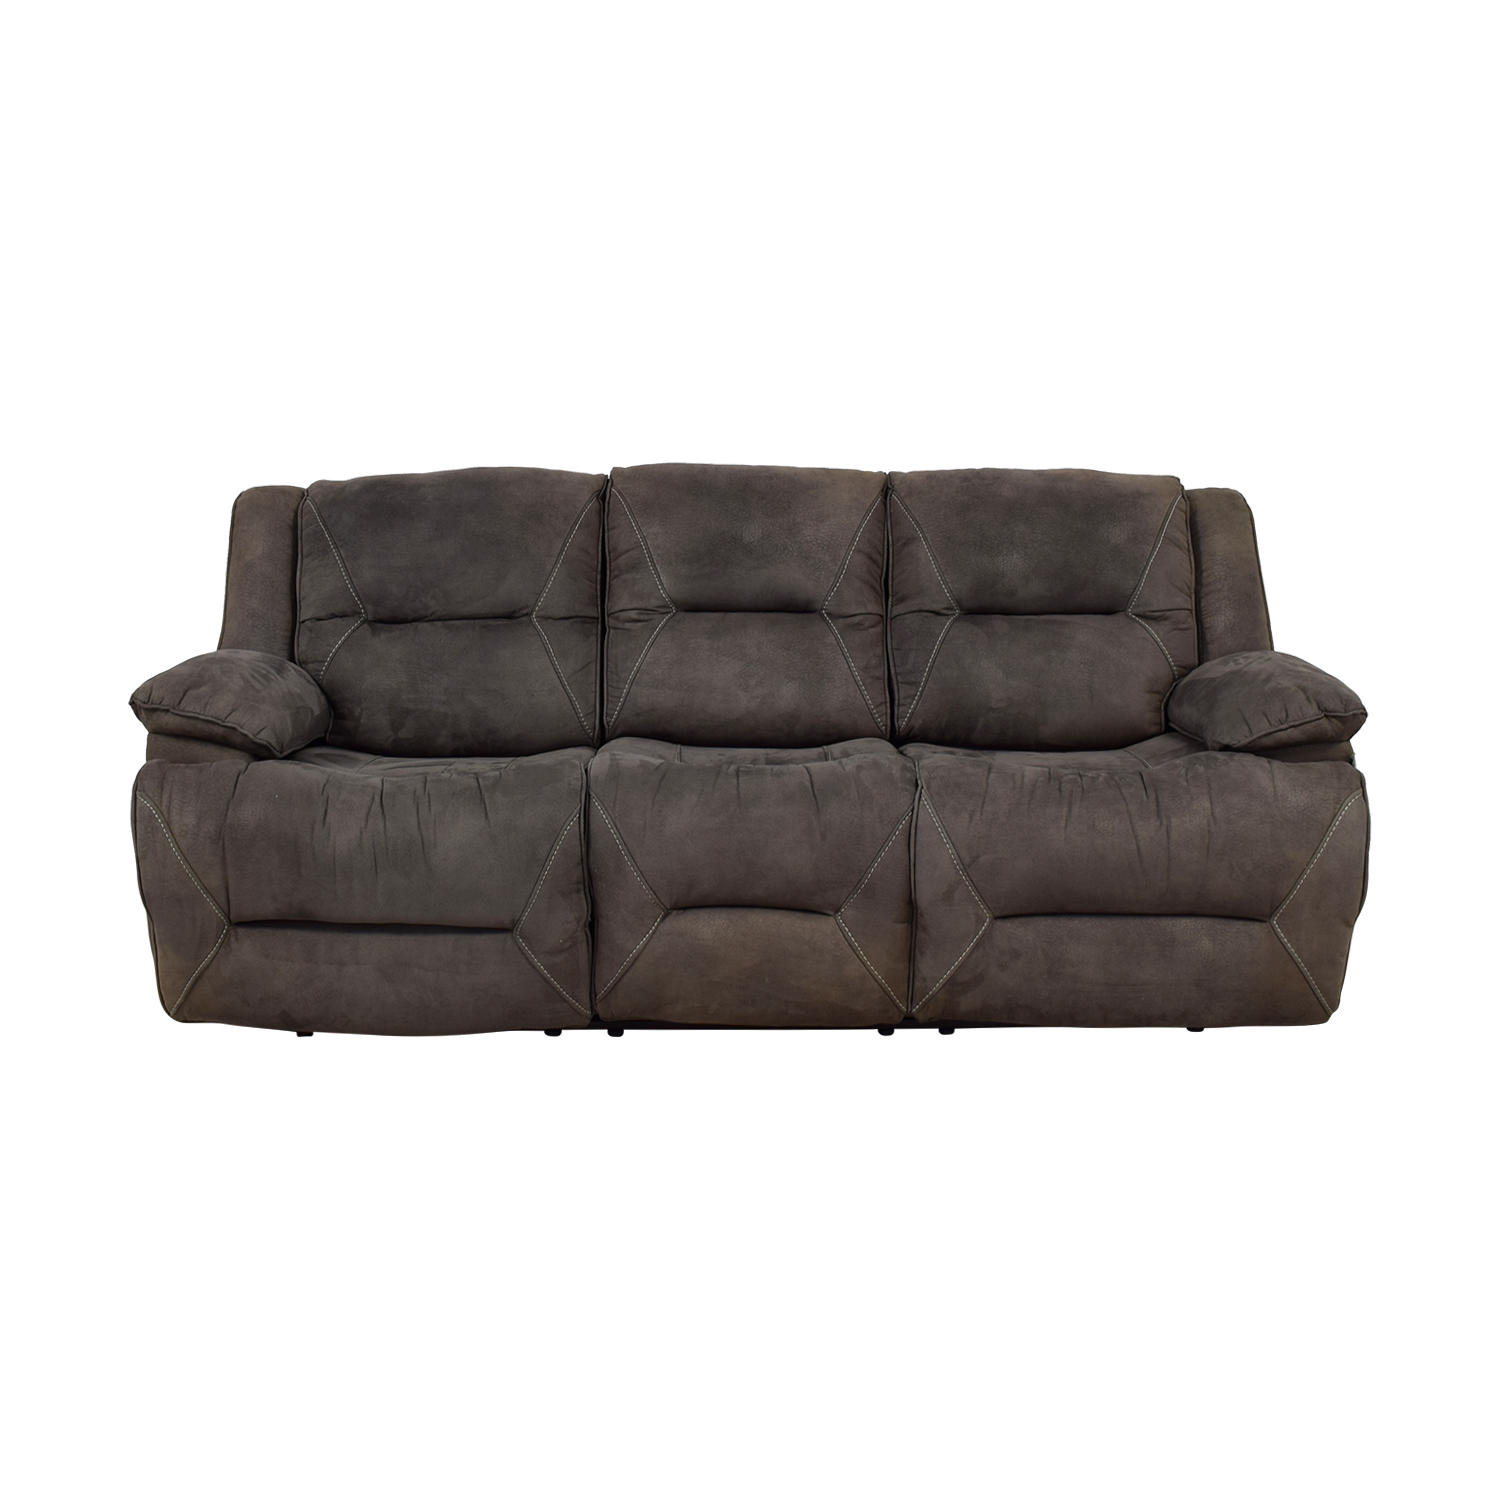 shop Raymour & Flanigan Grey Reclining Sofa Raymour & Flanigan Sofas